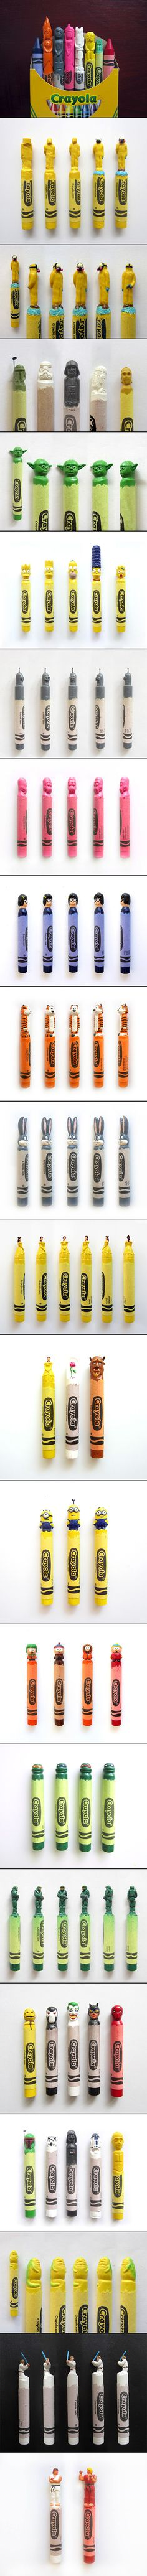 Wax Nostalgic is an ongoing series of miniature sculptures that are made by carving into ordinary crayons. All of these pop and nerd culture-inspired crayon sculptures are handcrafted by artist Hoang Tran.